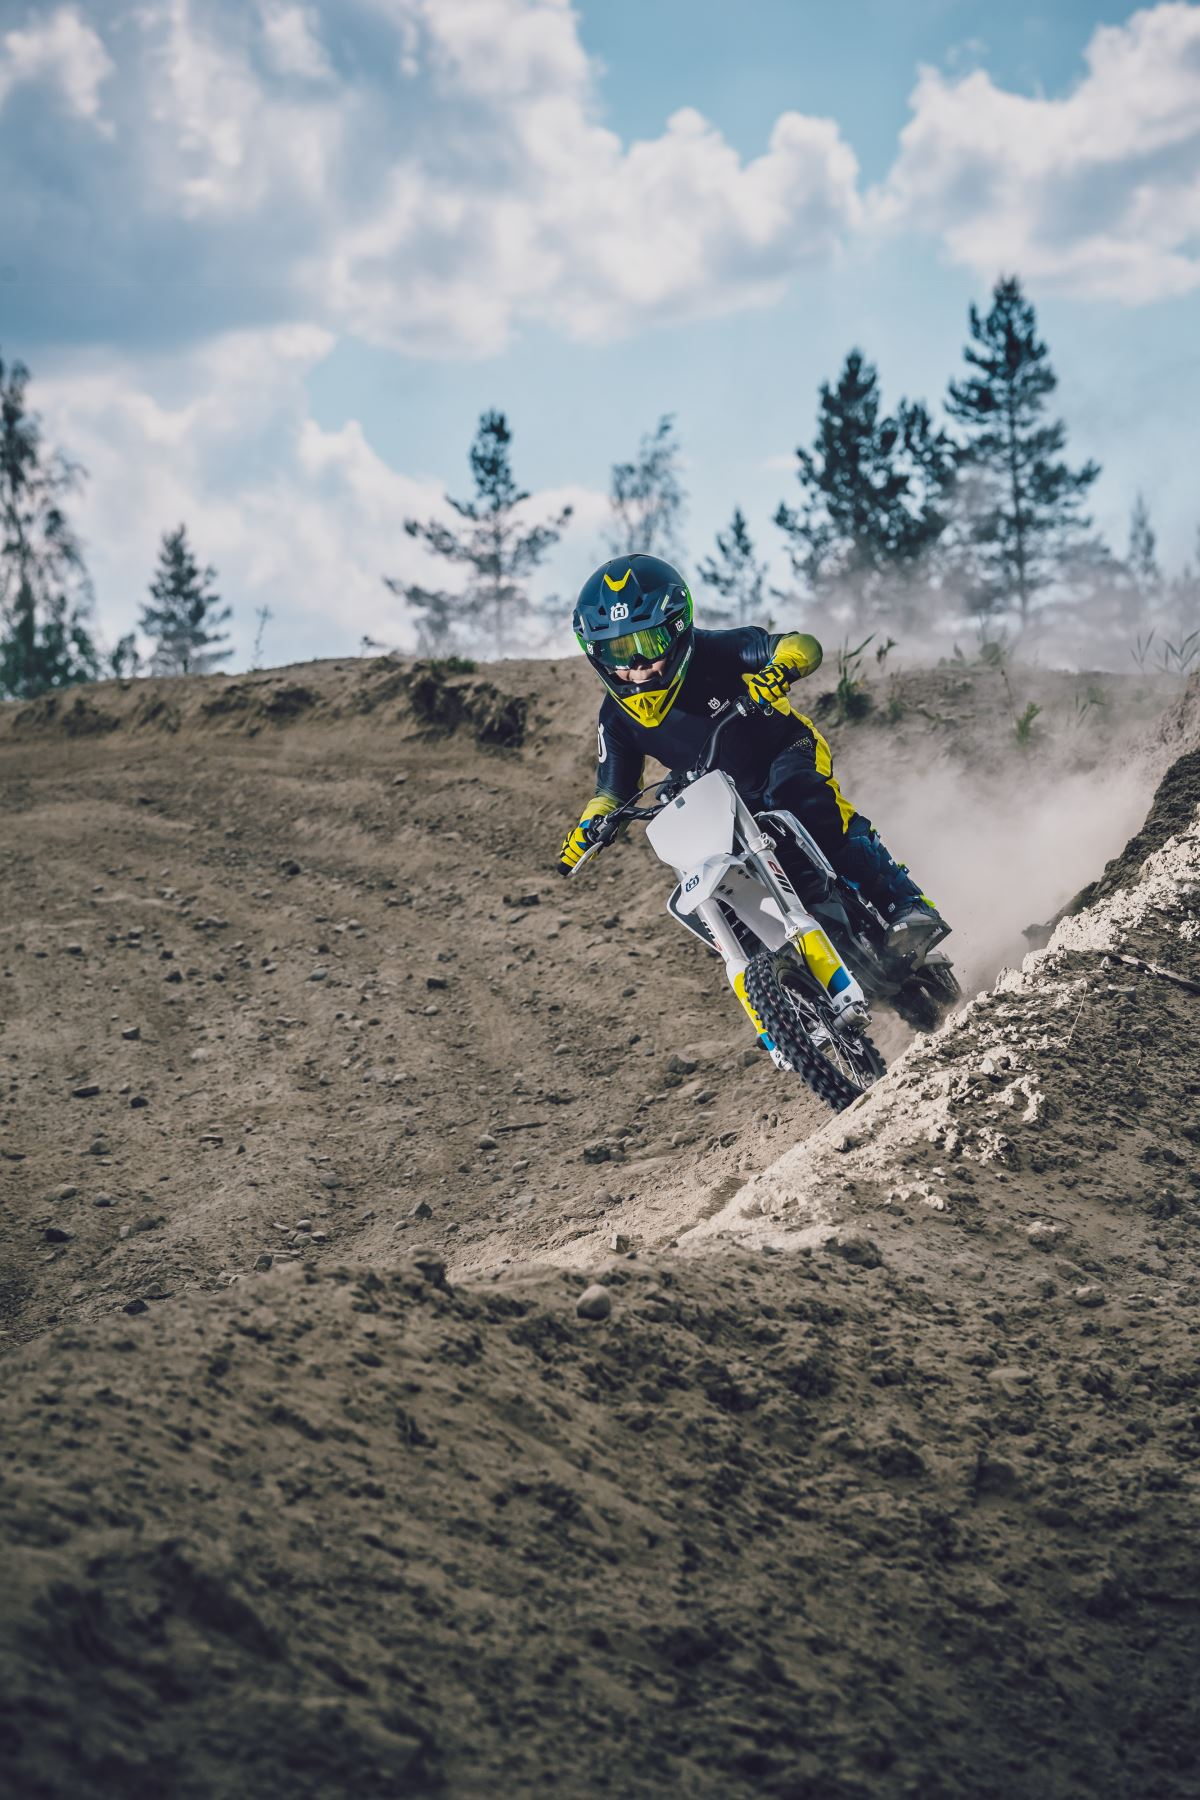 191122 Husqvarna Motorcycles EE 5 Eligible for 2020 AMA Amateur National Motocross Championship [2]